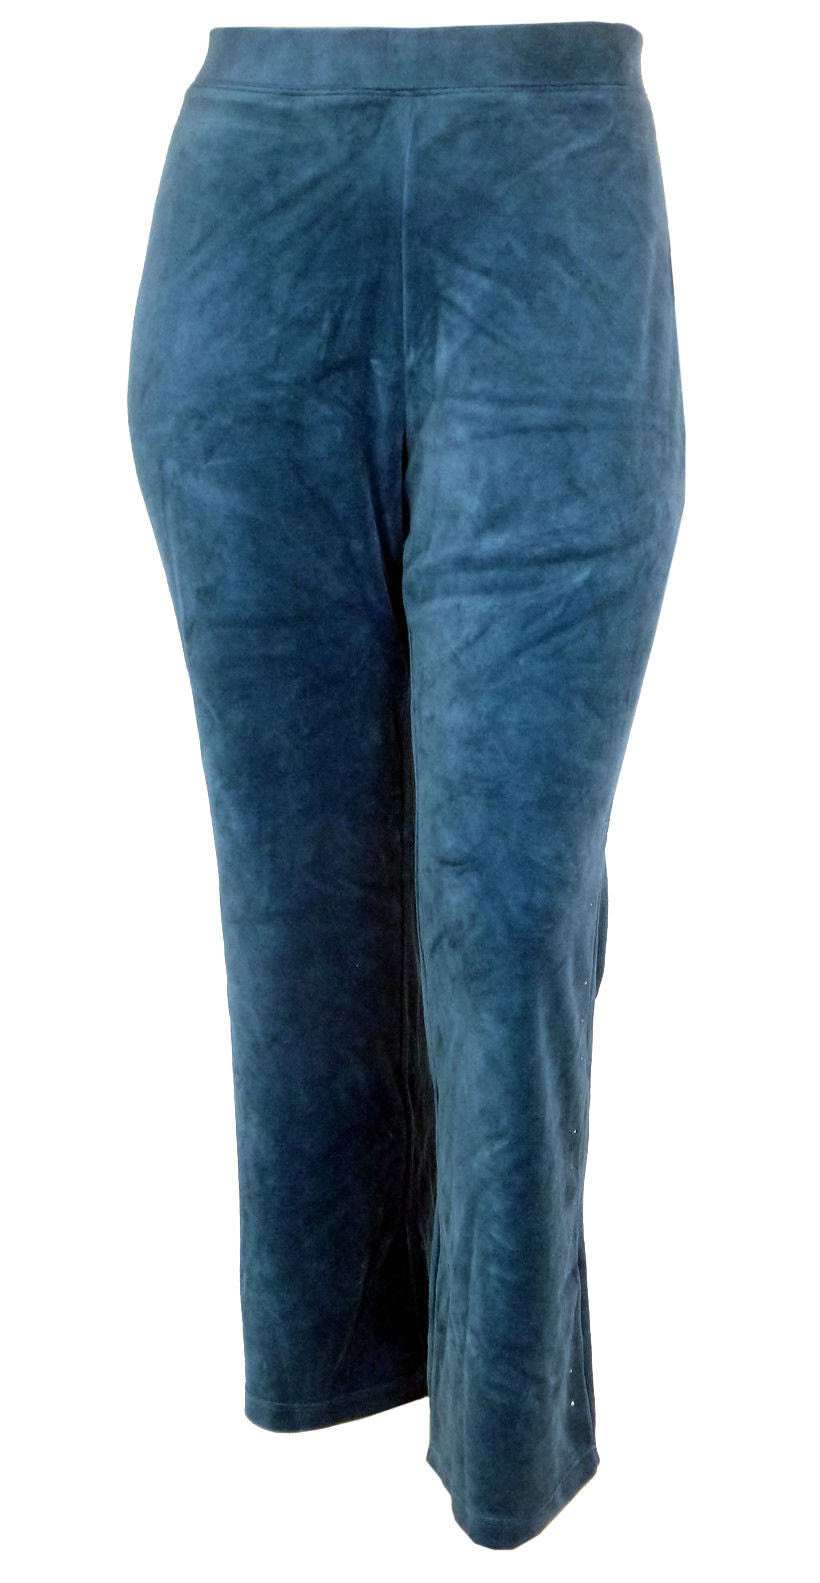 Style & Co Blue Wide Leg Rhinestone Embellished Velour Lounge Athletic Pants